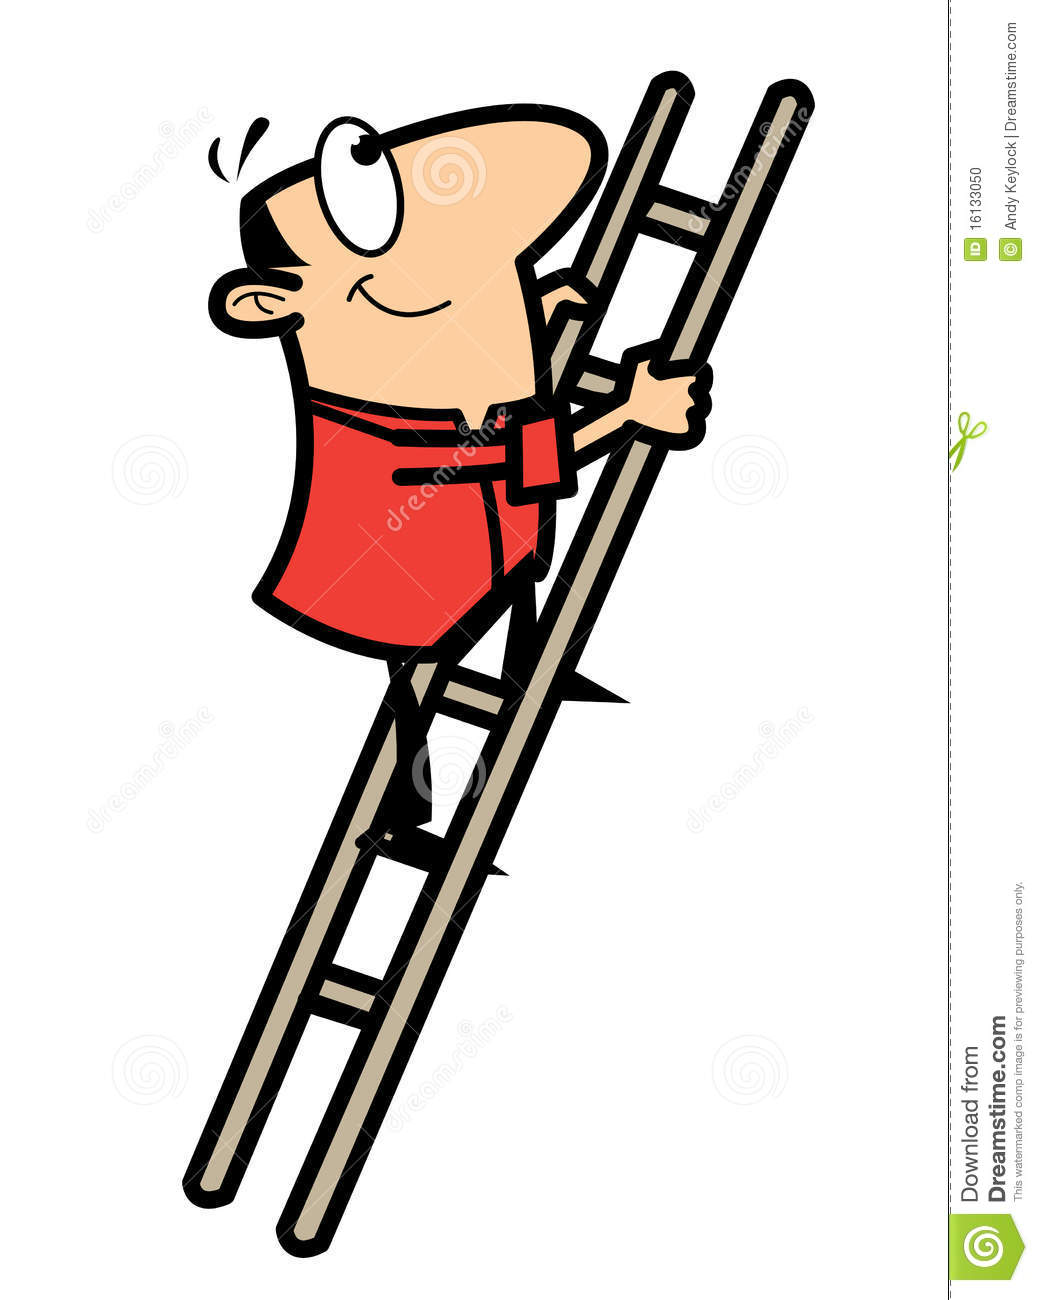 1038x1300 Wall Clipart Climbing Ladder